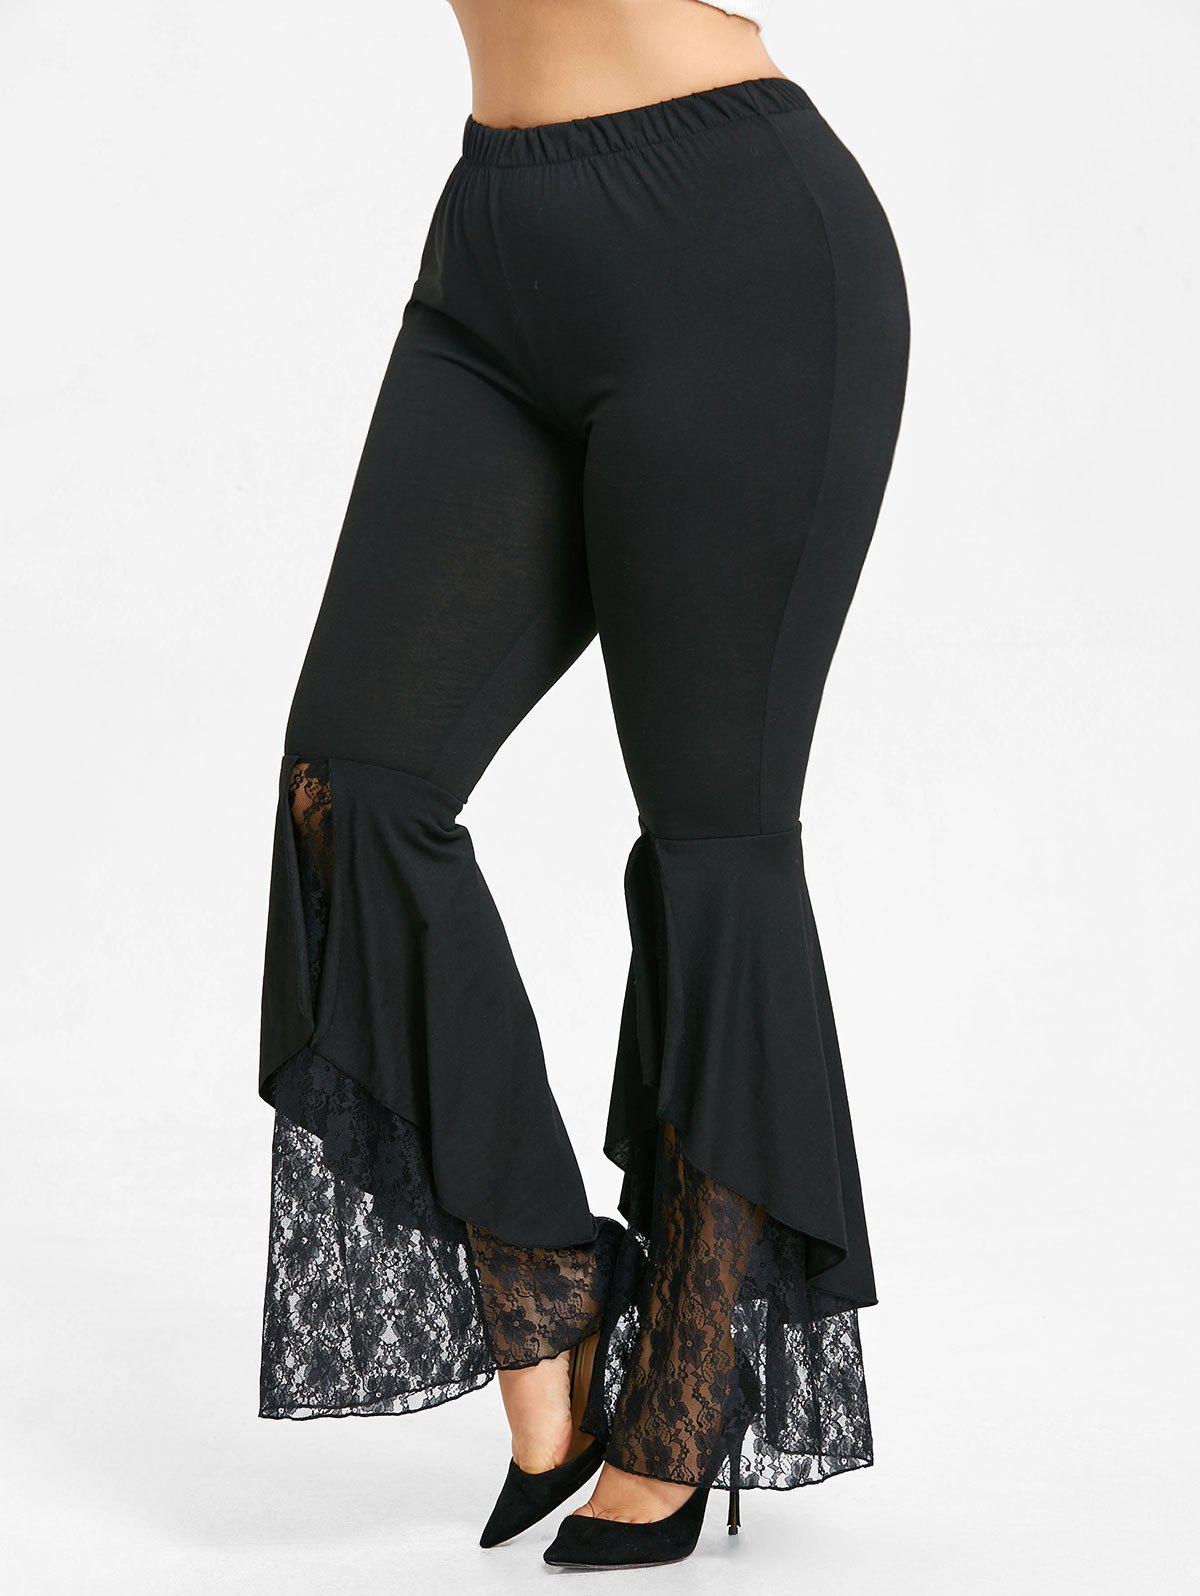 Lace Trim Plus Size Flare Leggings - BLACK 3XL